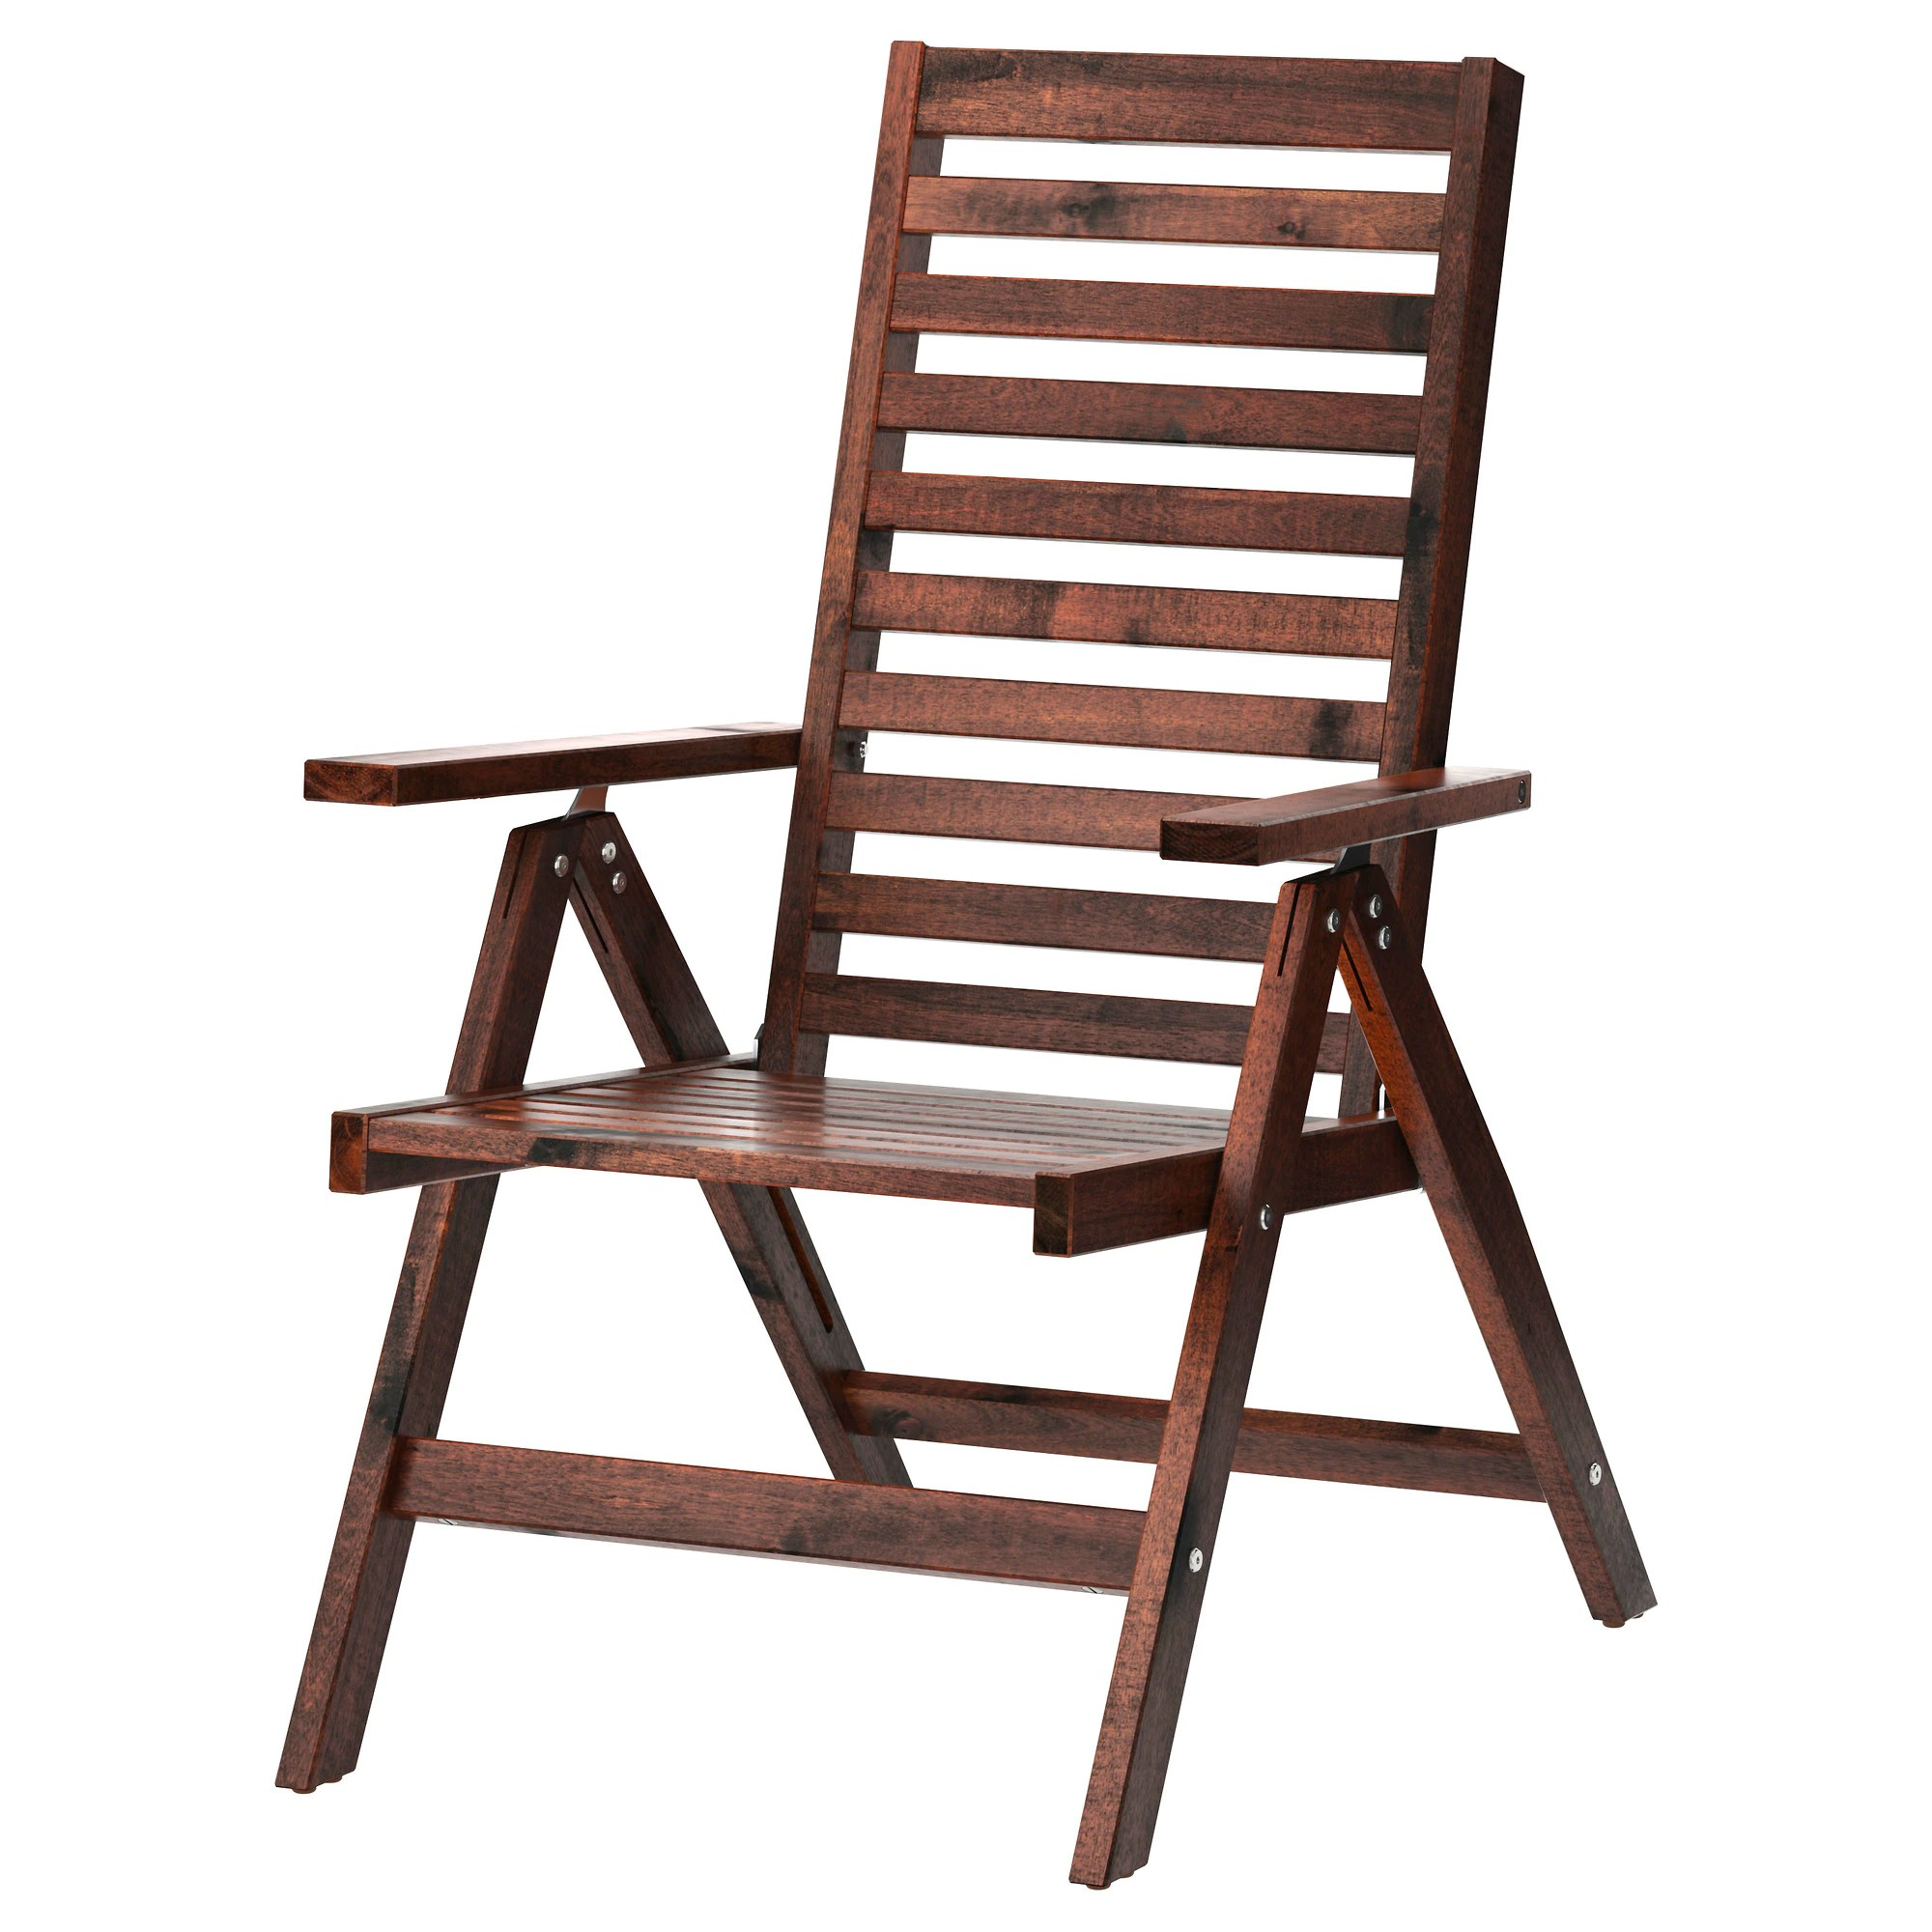 ikea rocking chair outdoor wooden applaro reclining inter systems b v 1999 2018 privacy policy responsible disclosure